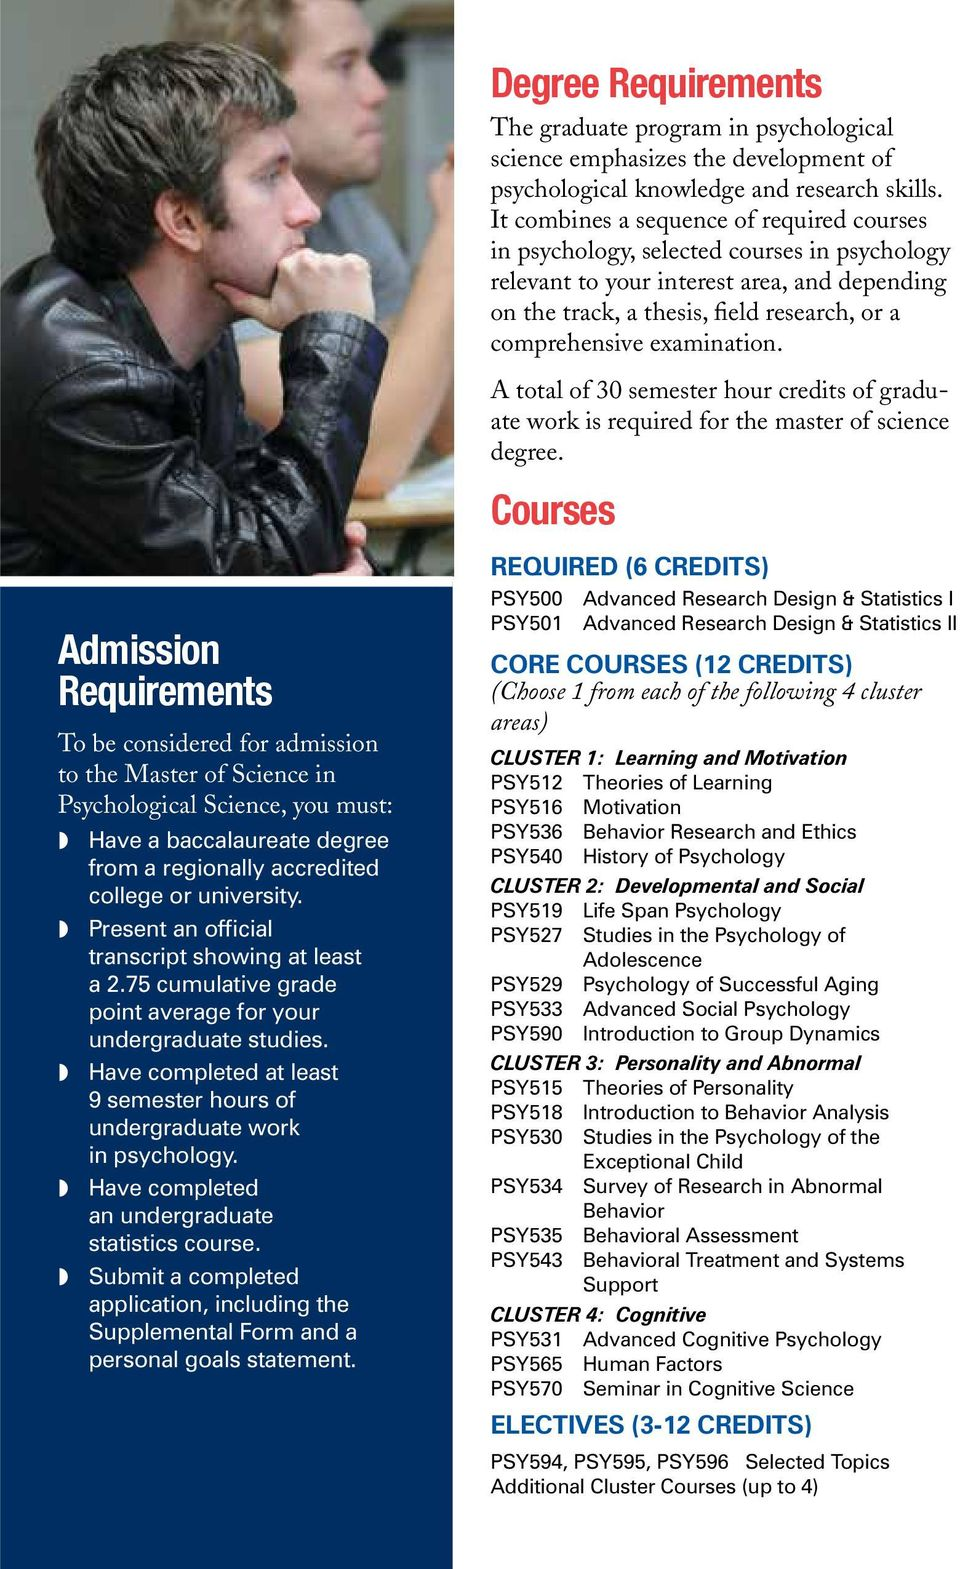 examination. A total of 30 semester hour credits of graduate work is required for the master of science degree.